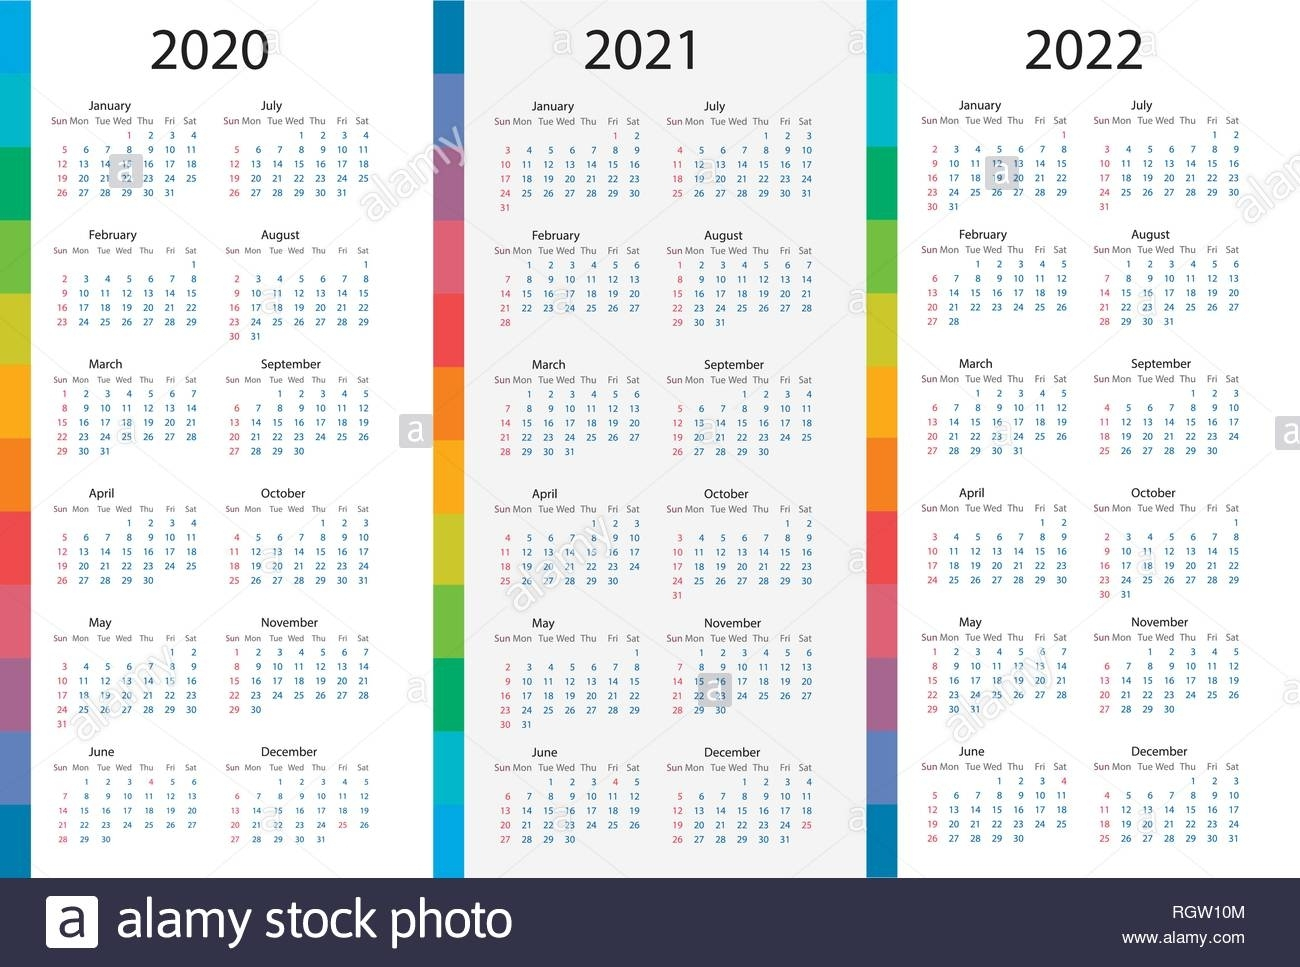 Calendar Template Set For 2020, 2021, 2022 Years. Week in Printable Calendar Or 2020 And 2021 Monday To Sunday